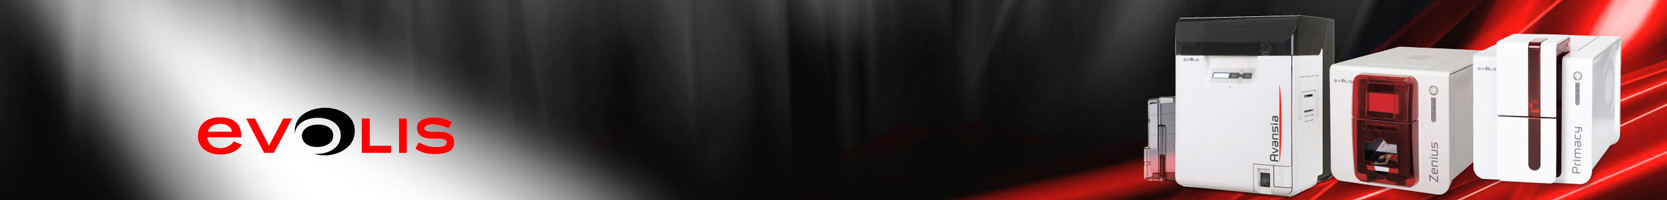 BANNER-main-inferior-evolis-1